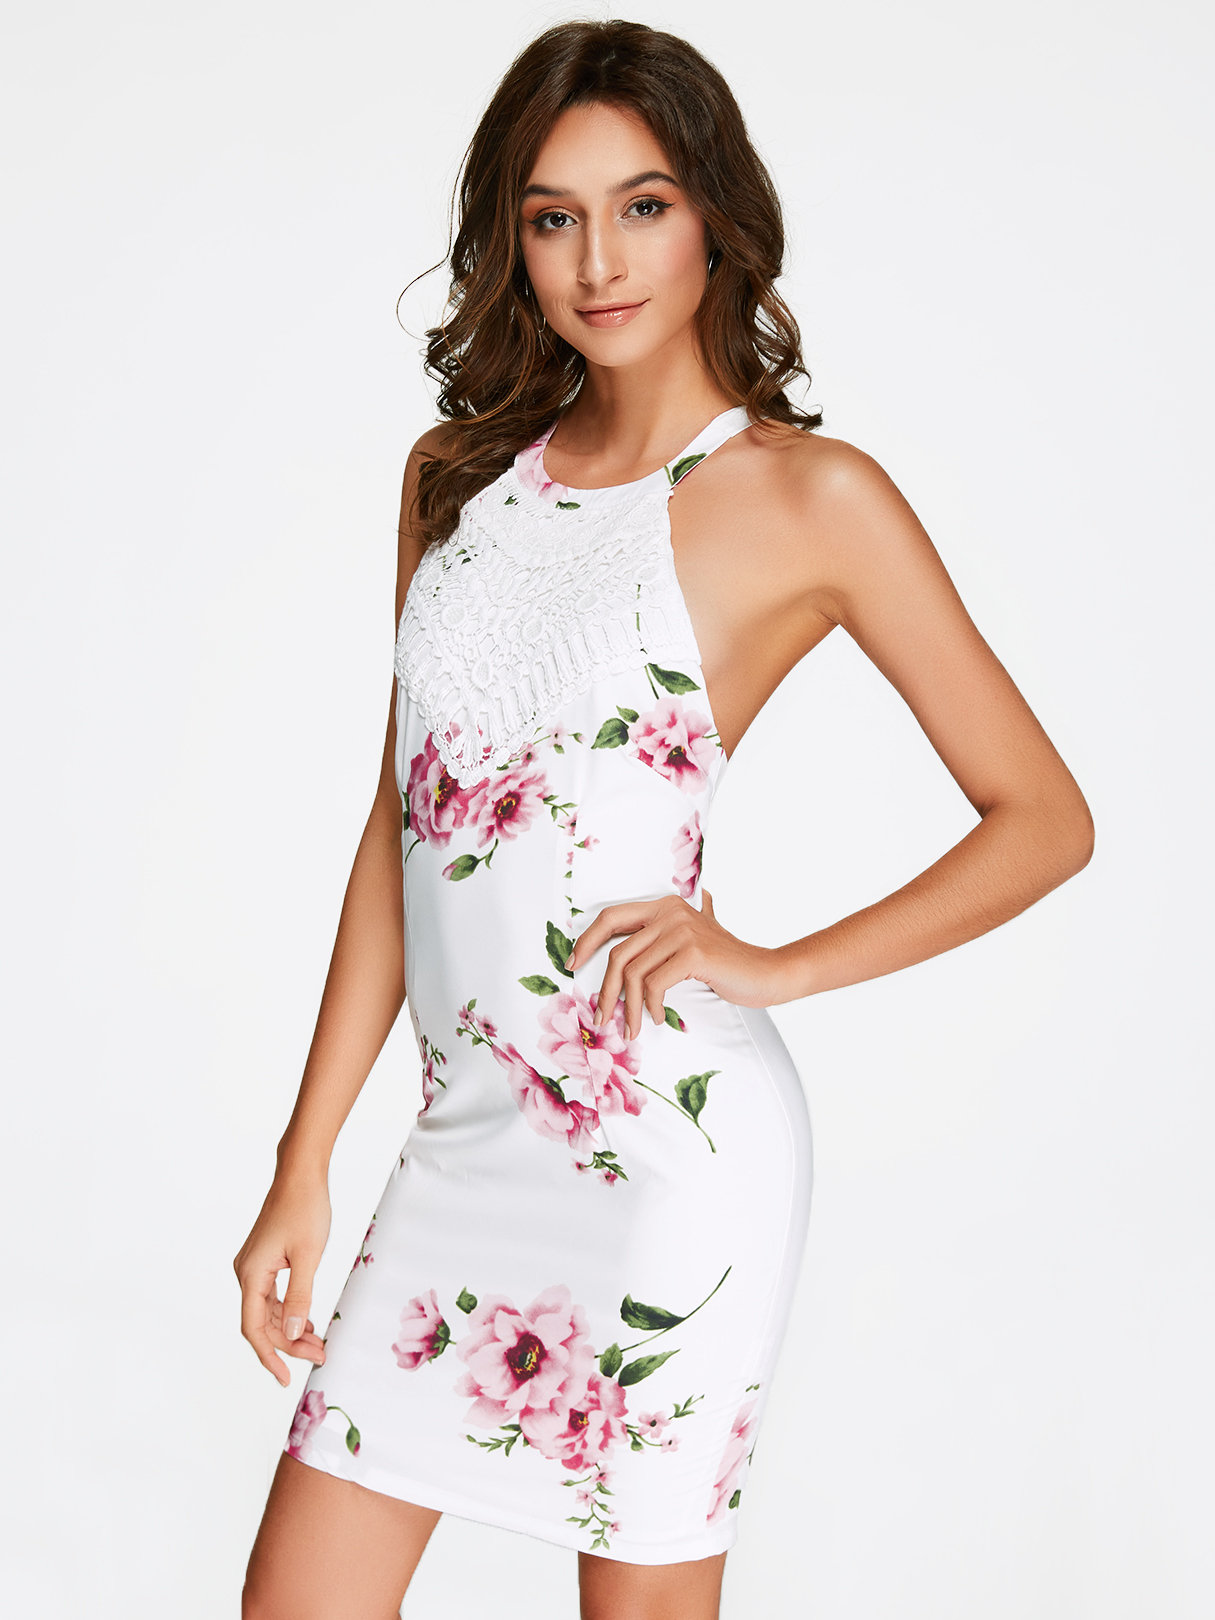 75a6087bc9d3 Details about Women's Summer Sexy Halter Neck Backless Random Floral Print  Bodycon Mini Dress